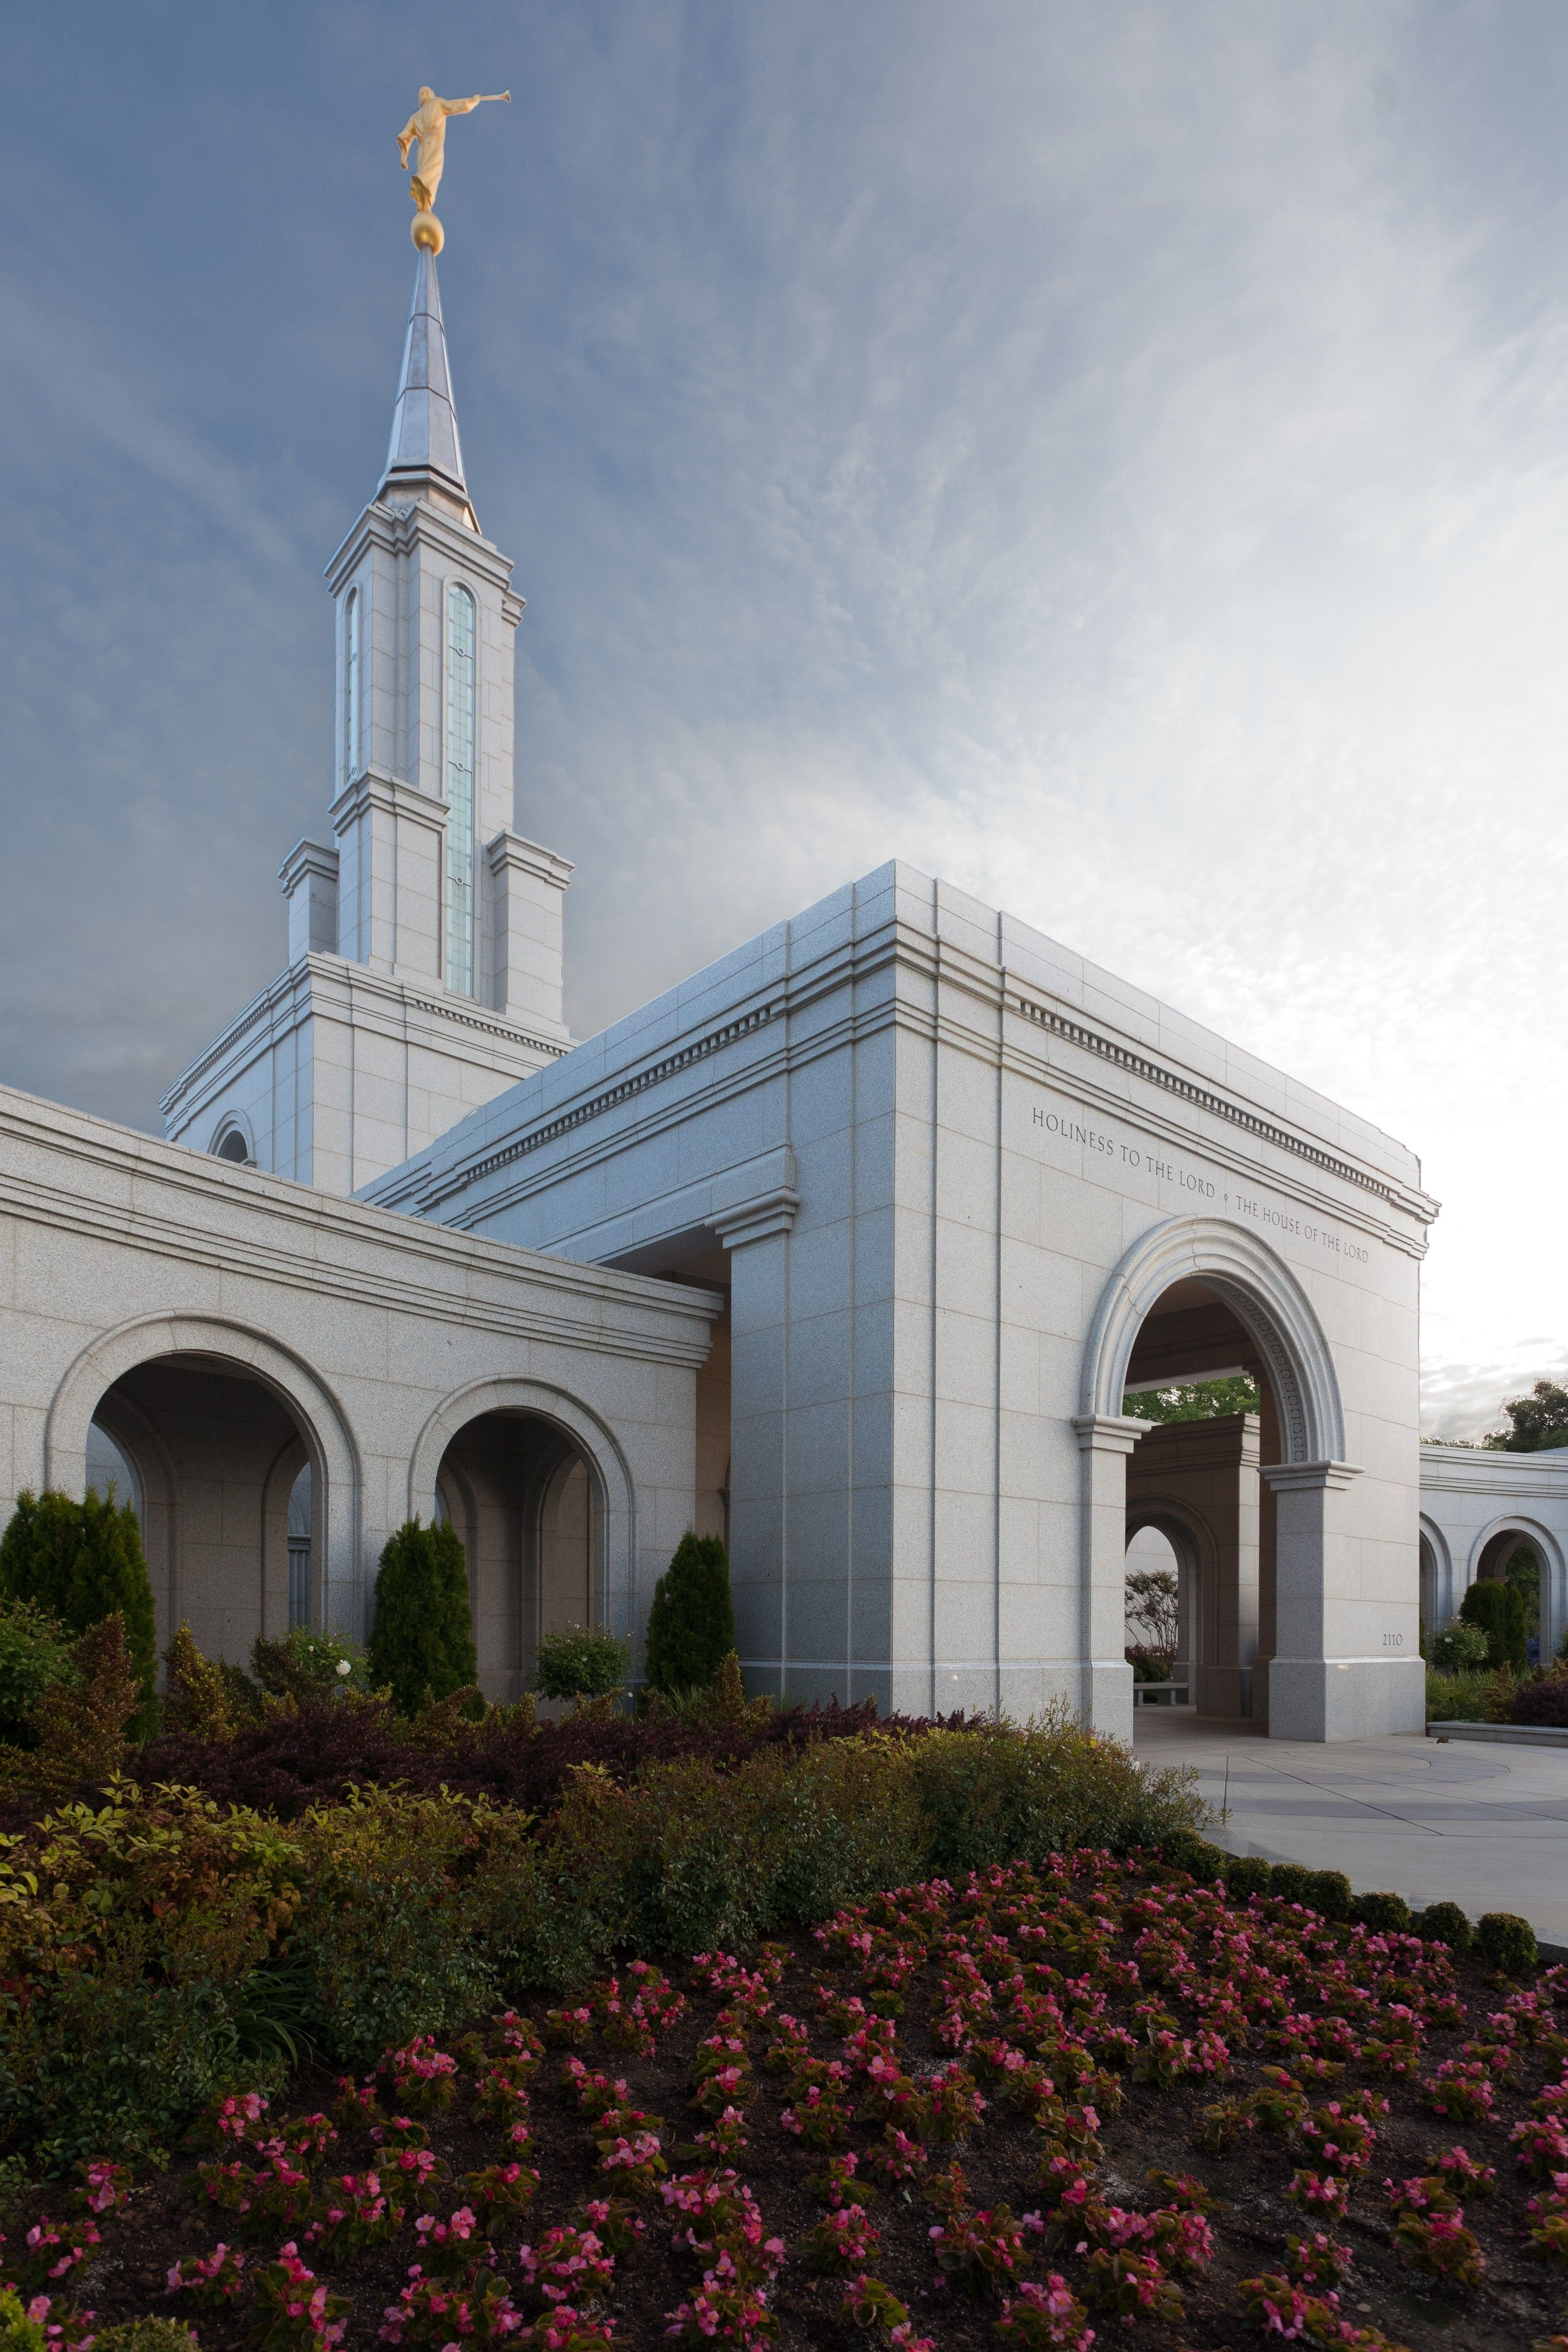 The Sacramento California Temple entrance, including the scenery and spire.